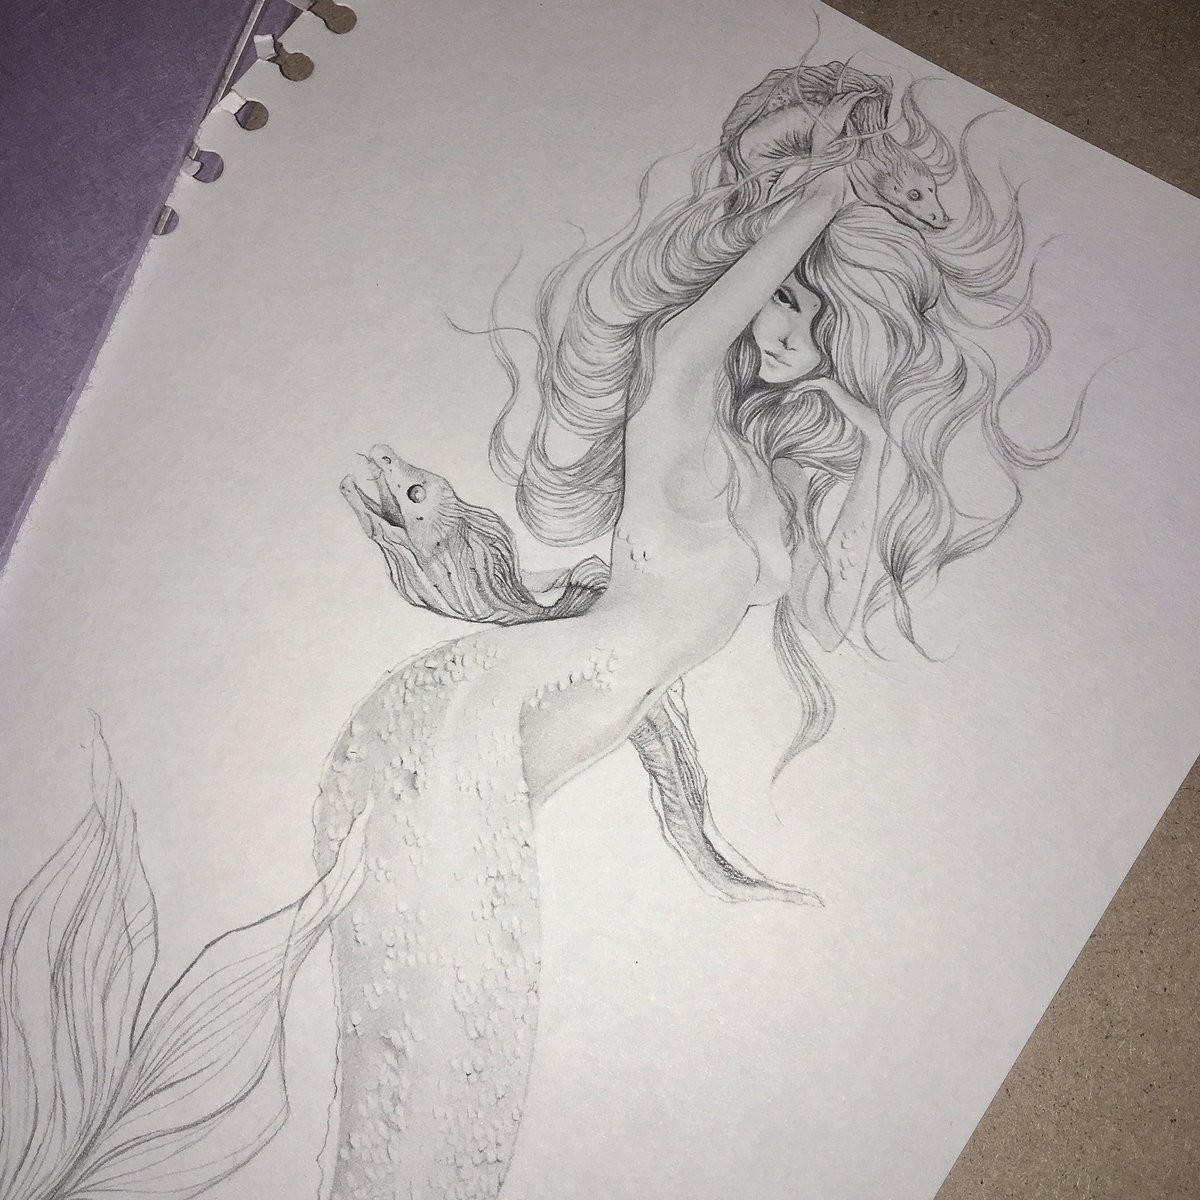 Liliana Domínguez On Twitter Mermaid Drawing Practicing Some